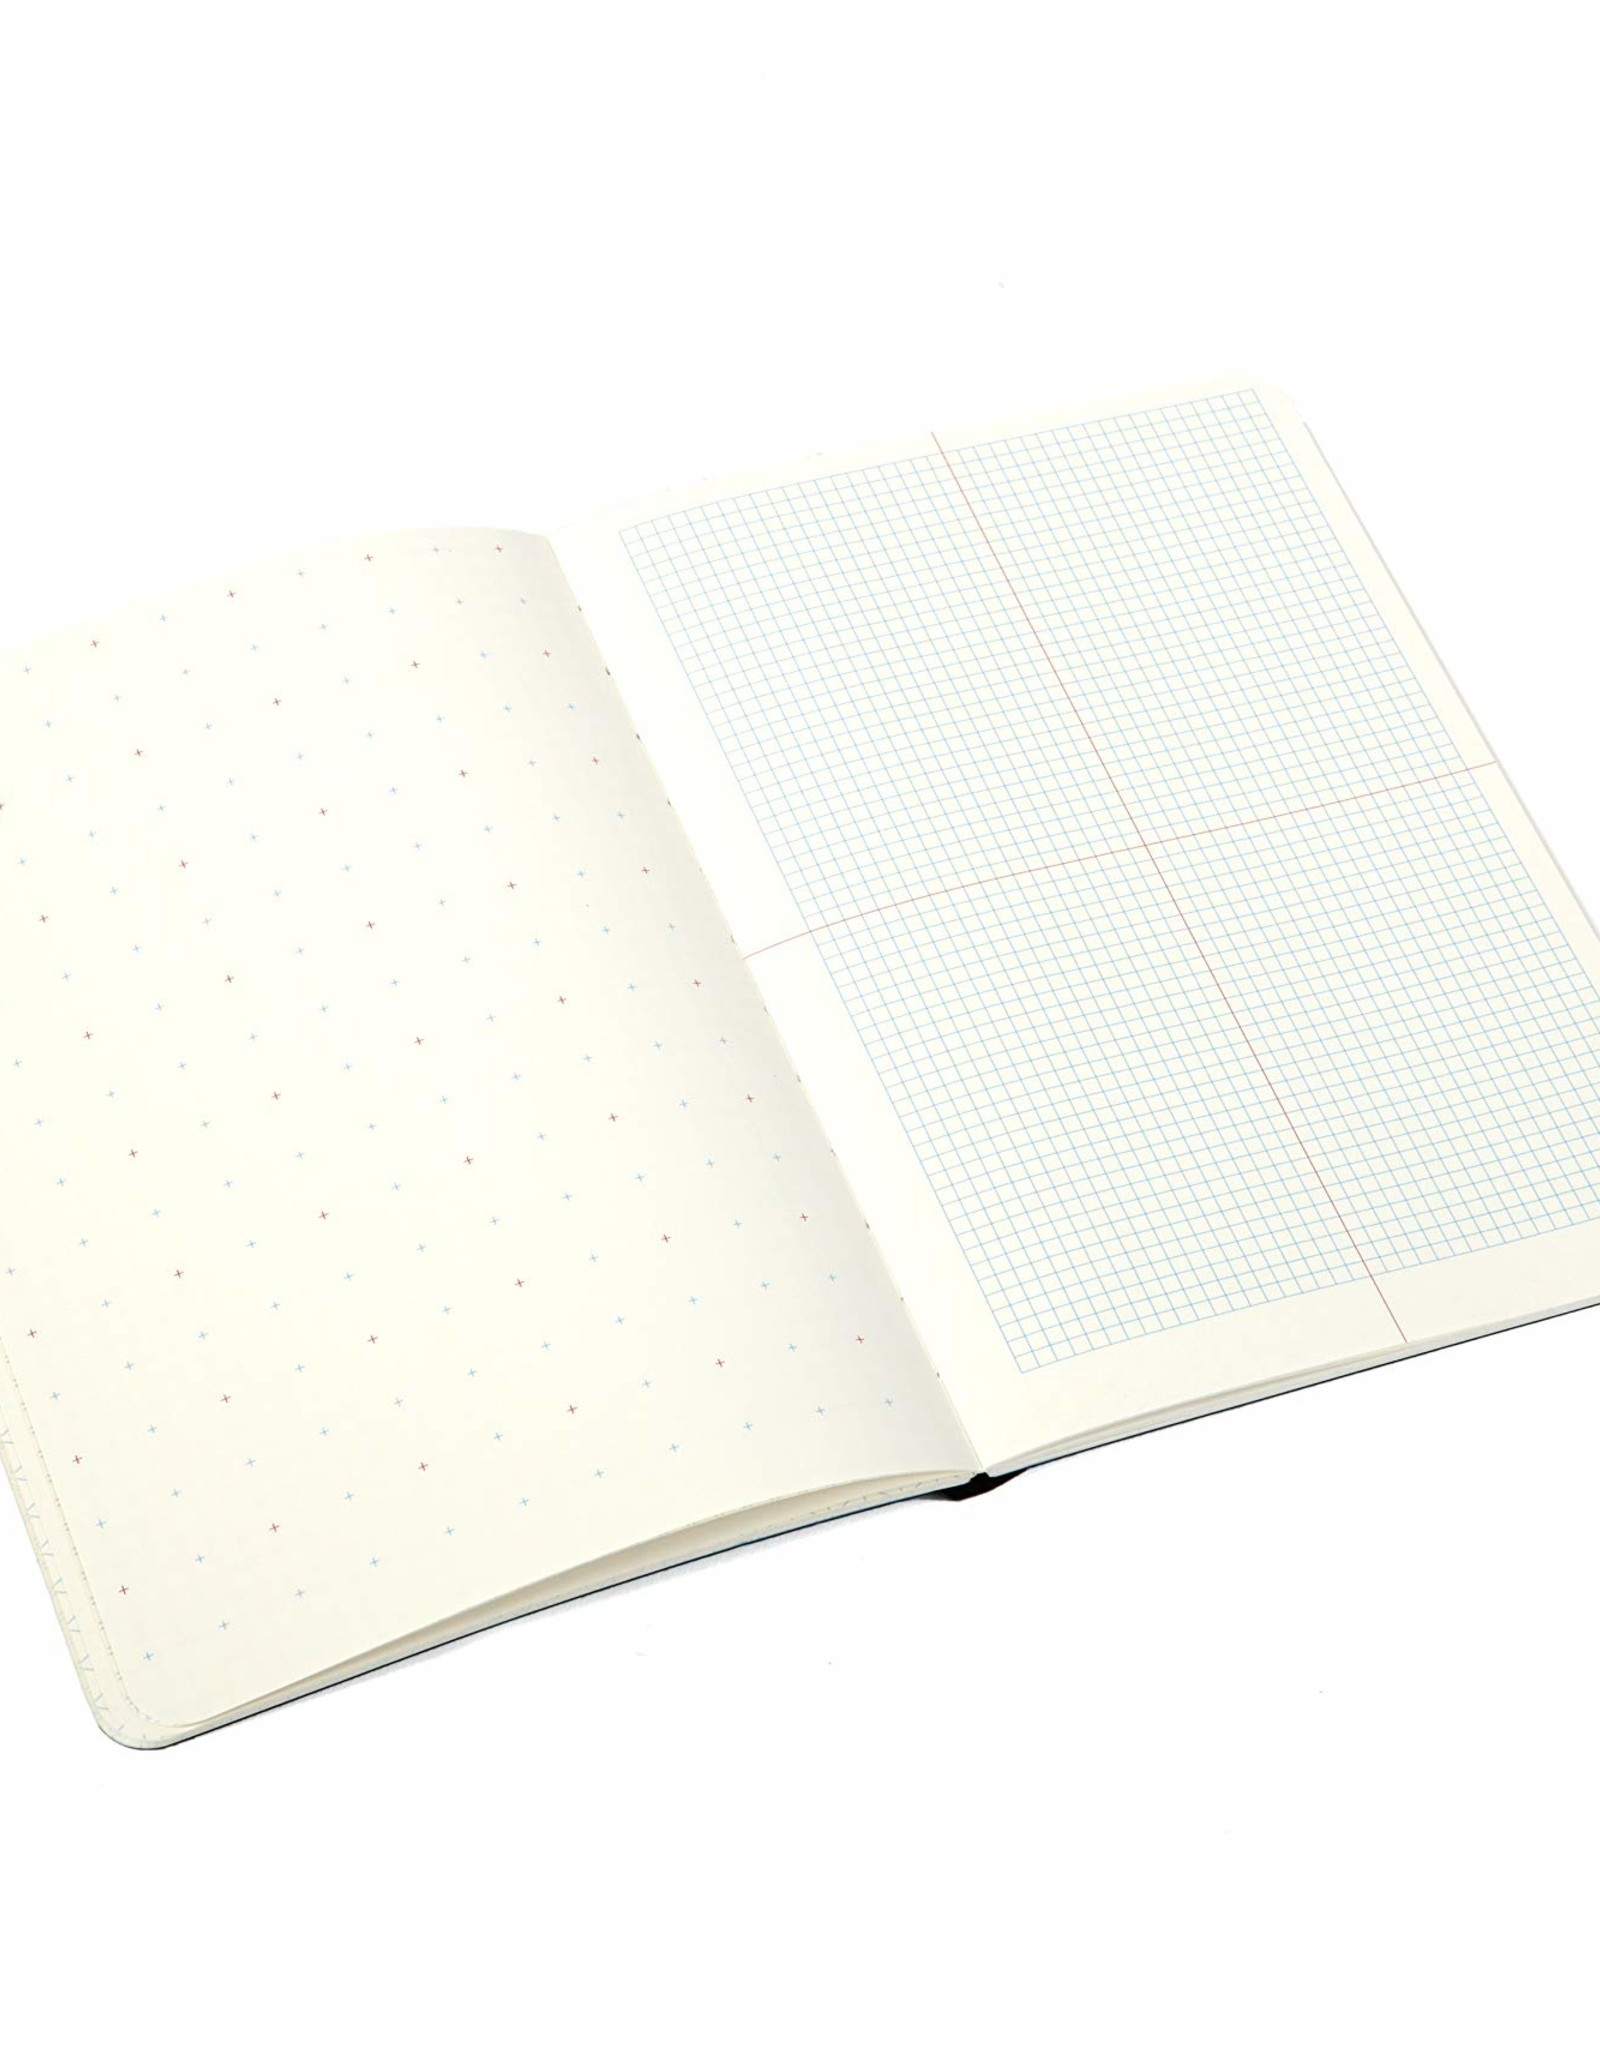 Chronicle Books Notebook - Grids and Guides